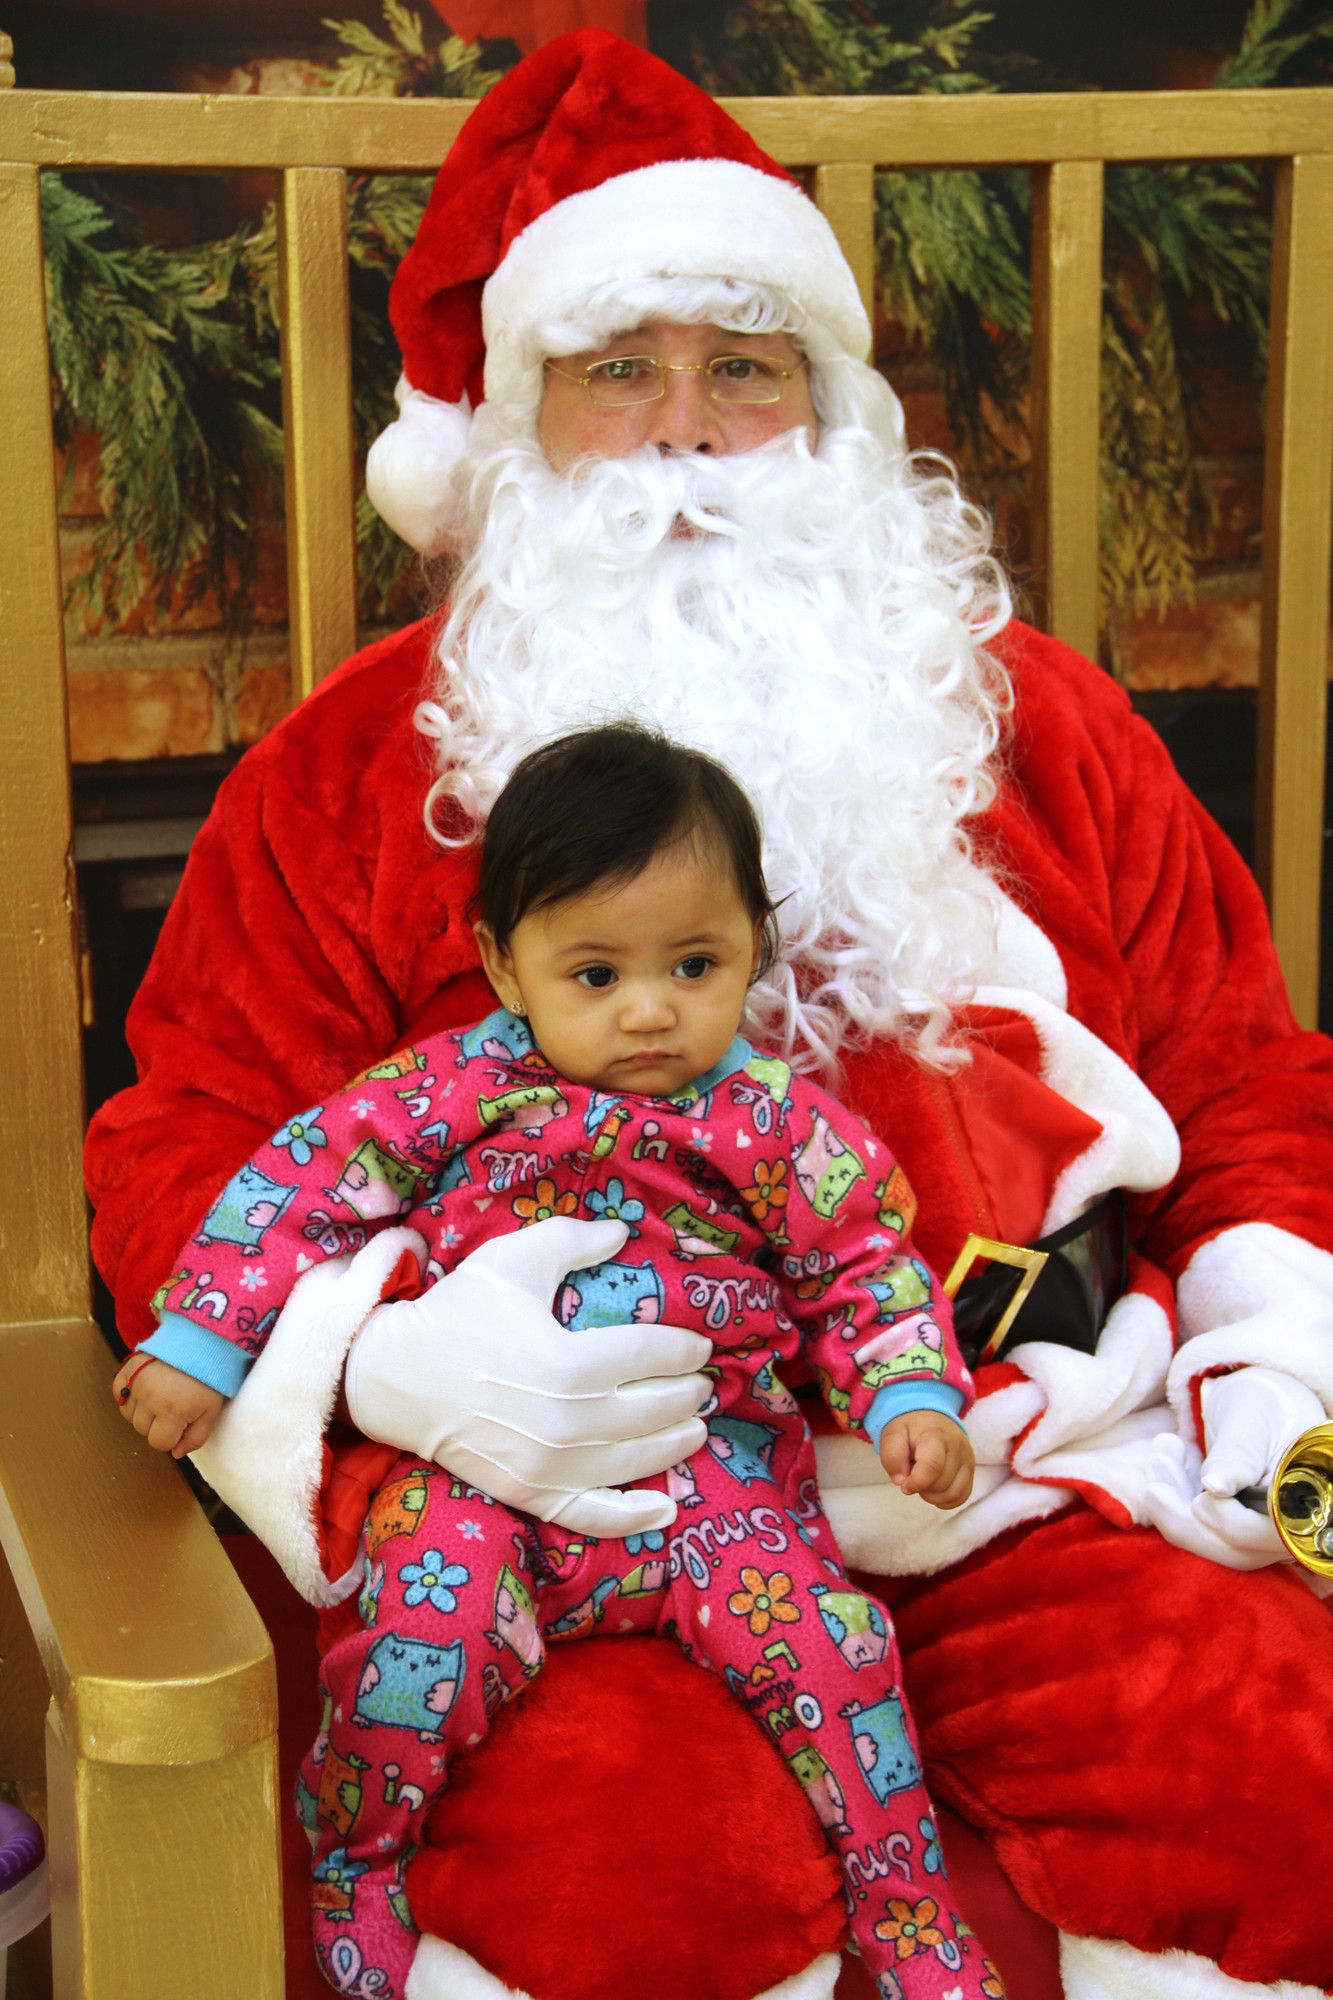 Adrianna Margolis Walker sat on Santa's lap to tell him that she was a good girl this year.